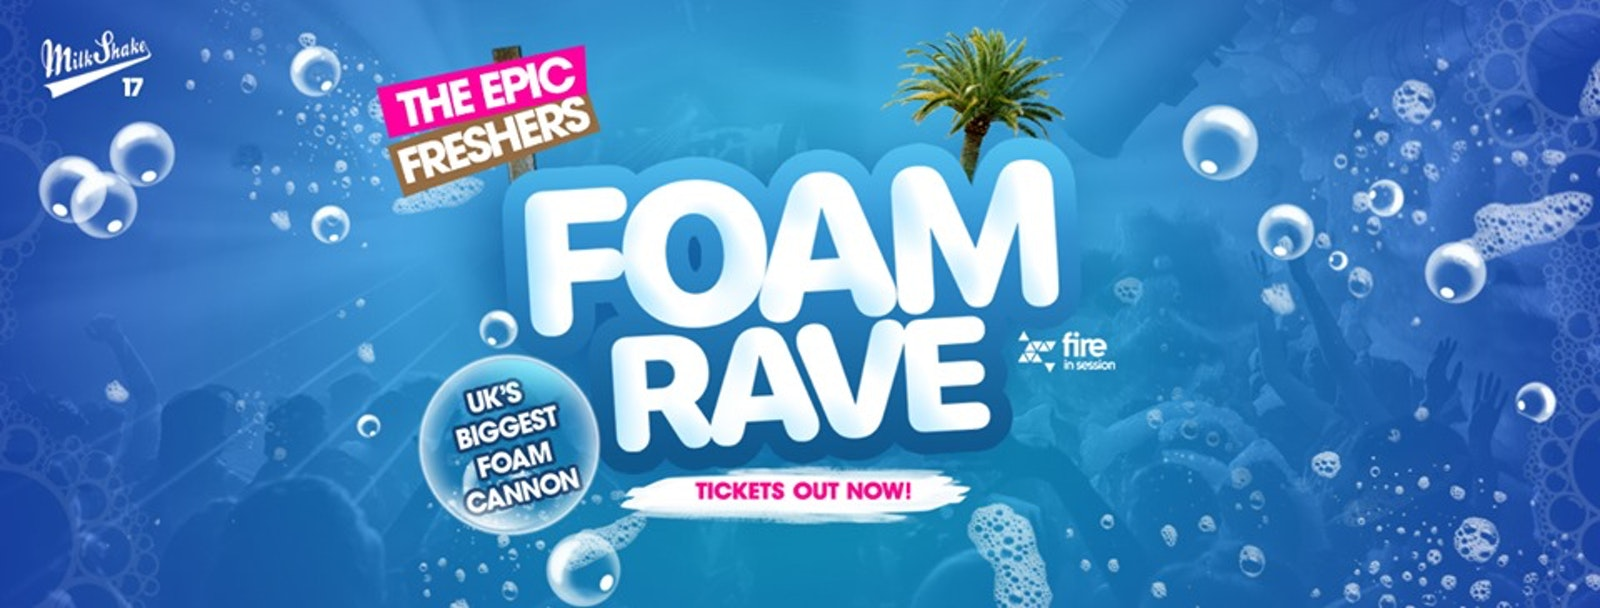 The Epic Freshers Foam Rave 2019   Live at Fire, Vauxhall London